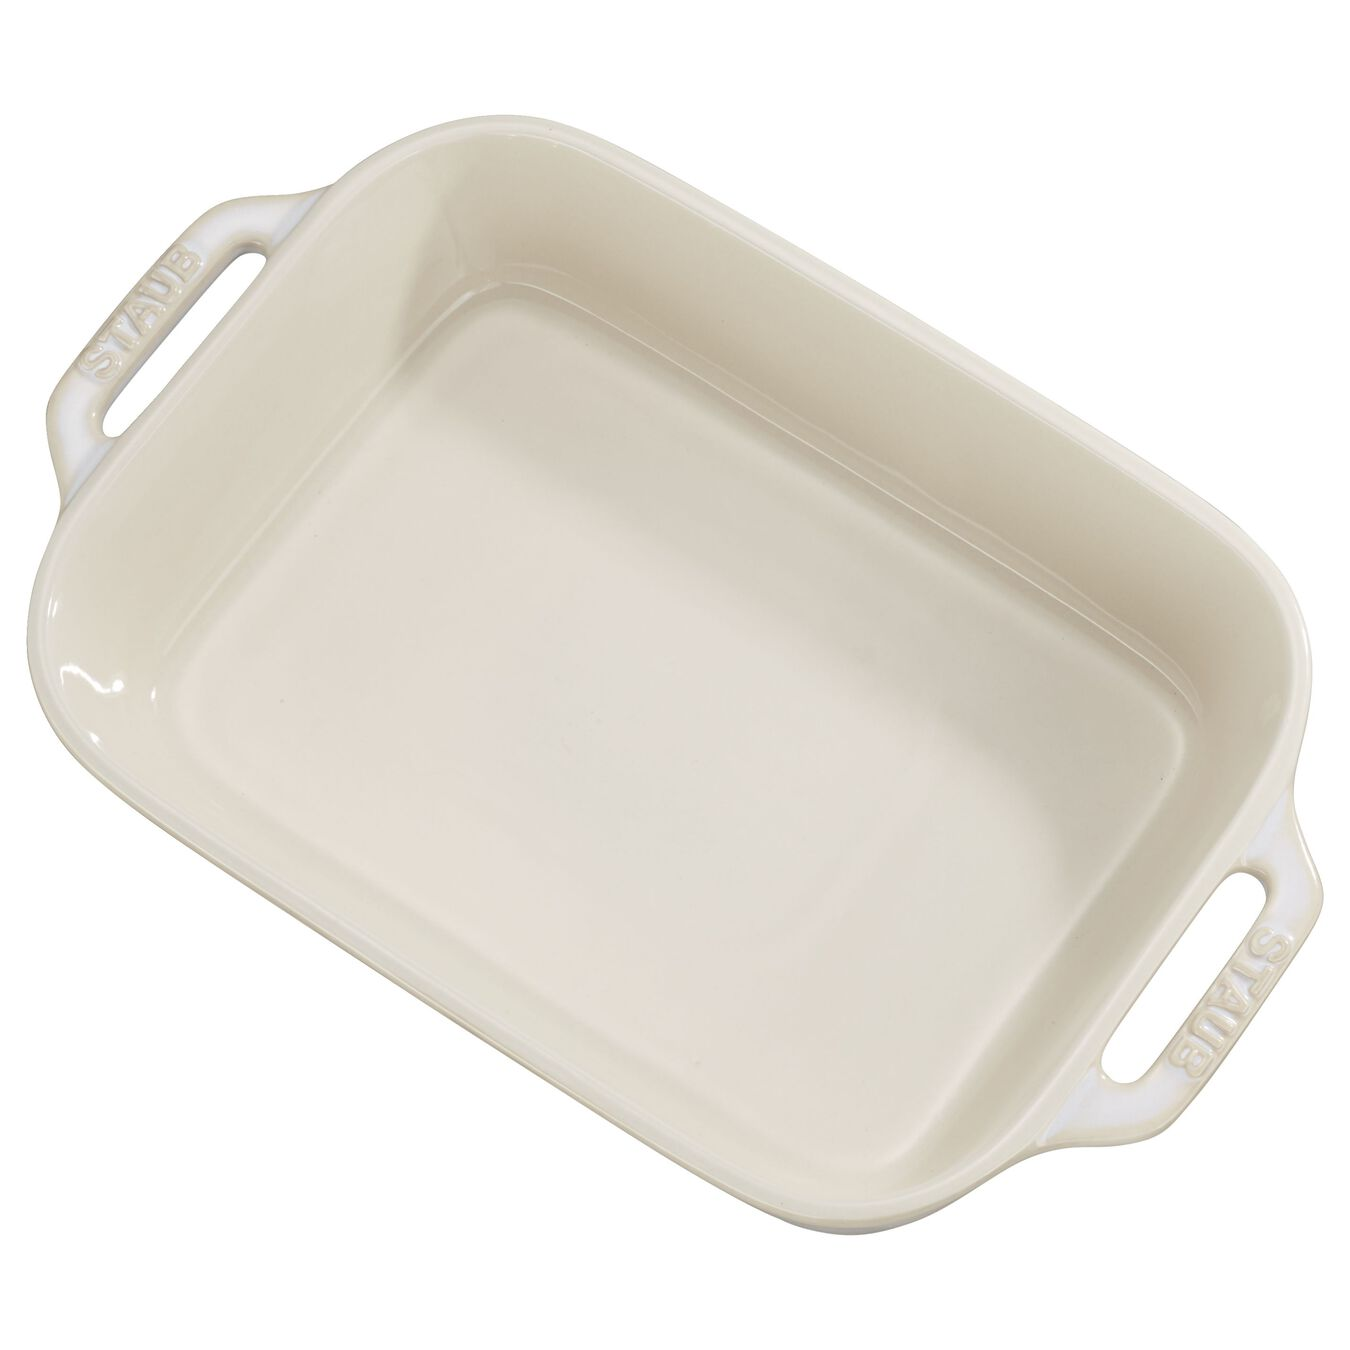 10.5-inch x 7.5-inch Rectangular Baking Dish - Rustic Ivory,,large 1